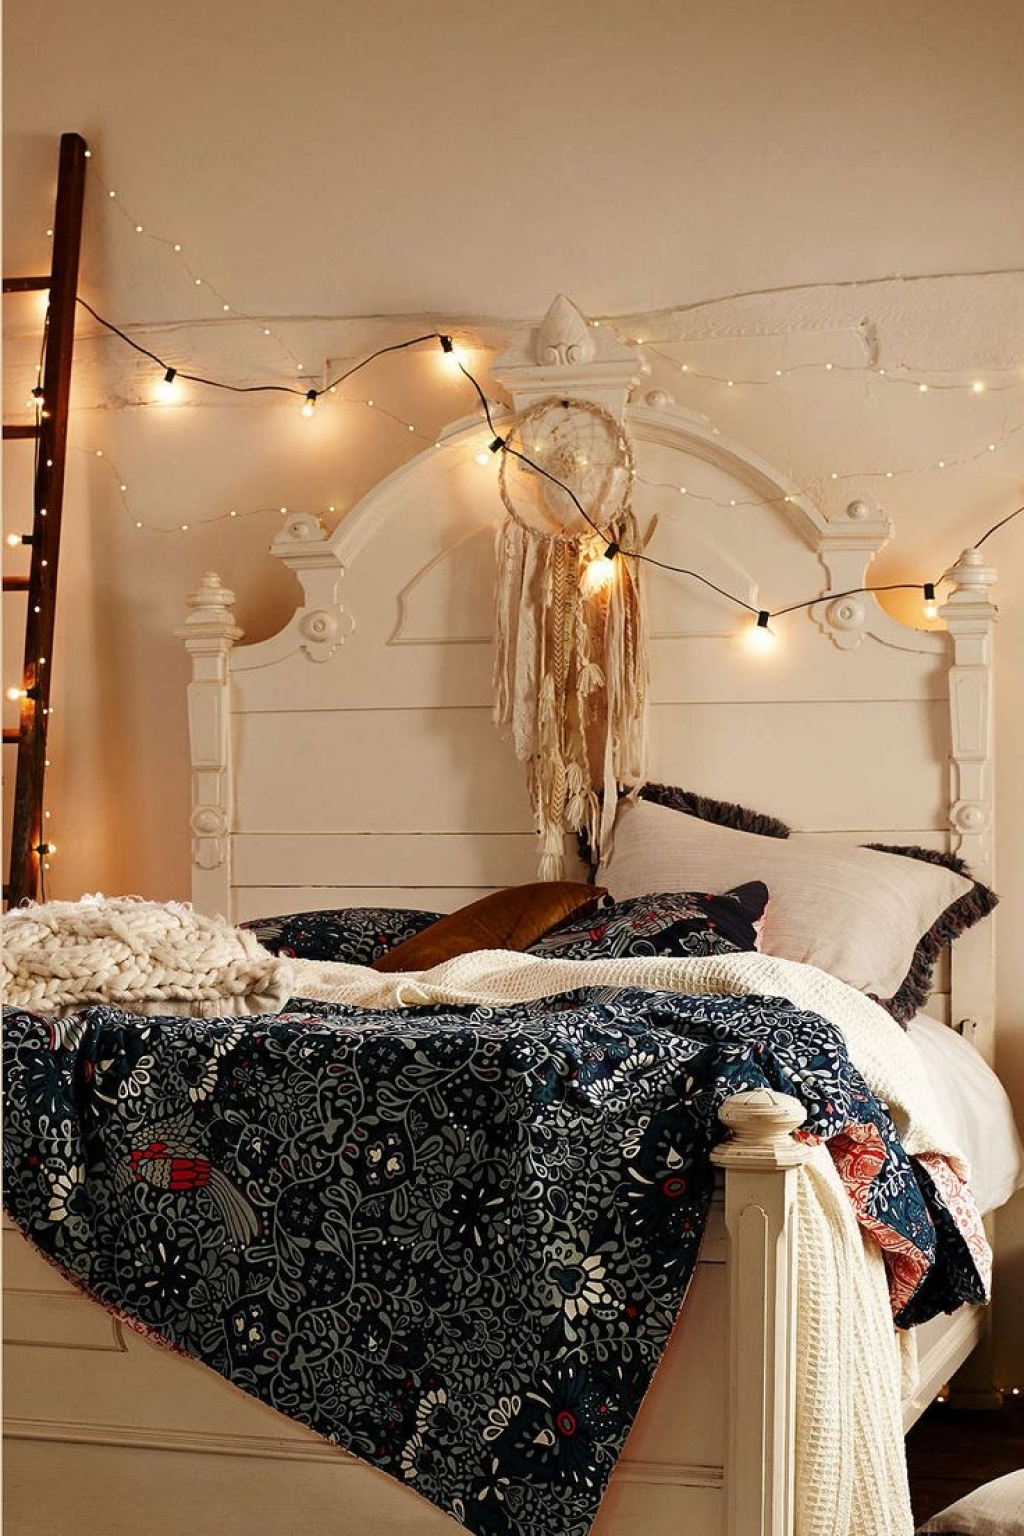 bedroom lights string 30 ways to create a ambiance with string lights 10546